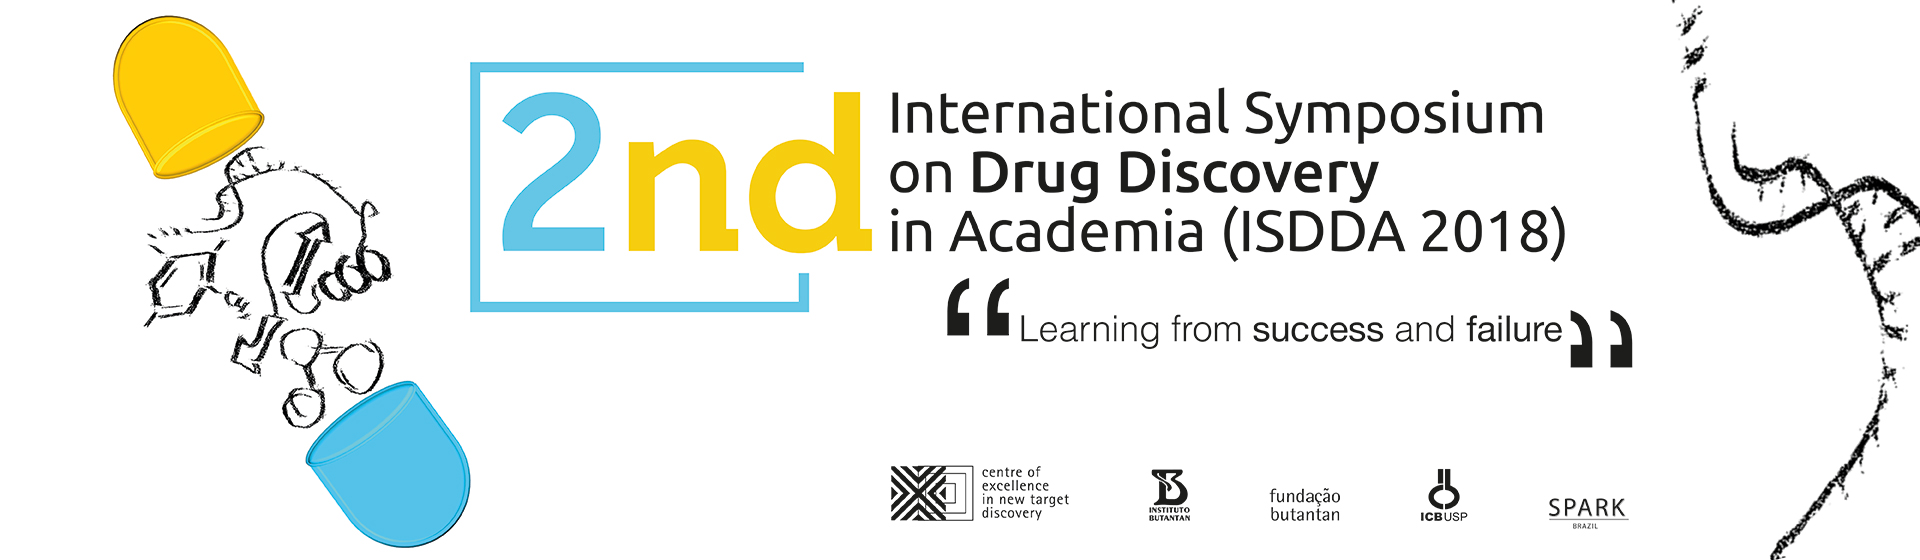 2nd International Symposium on Drug Discovery in Academia (ISDDA 2018)